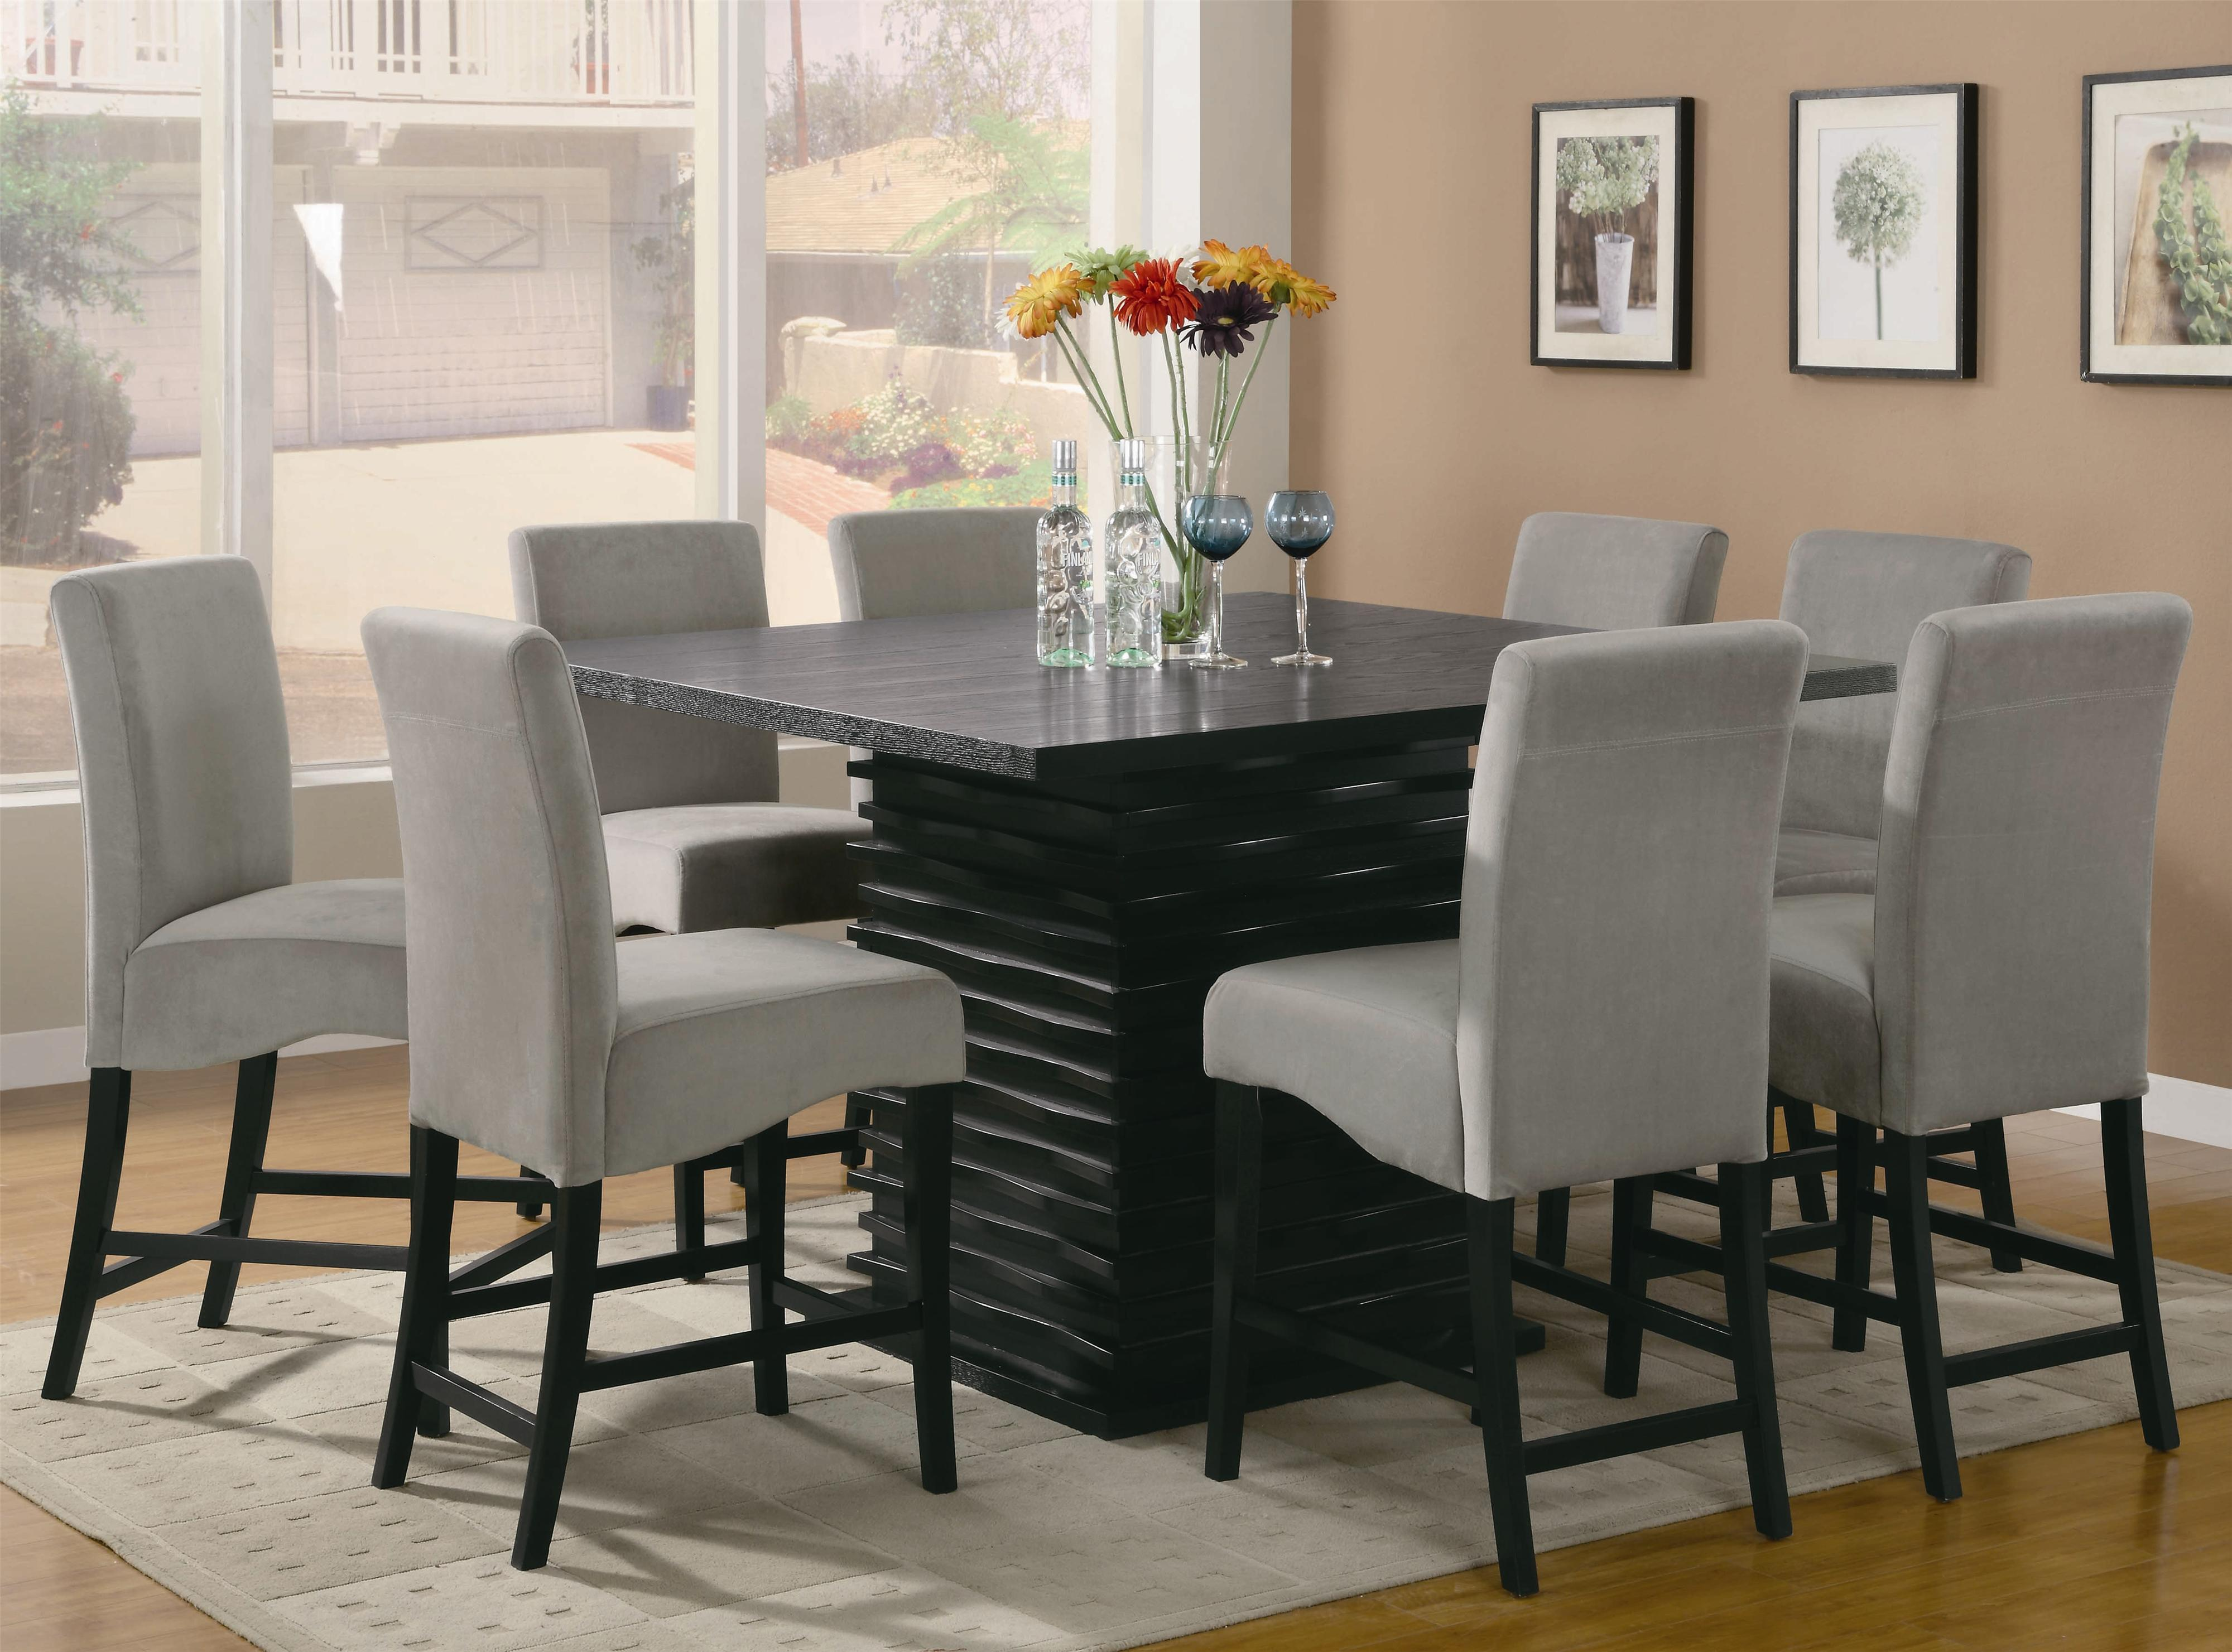 Coaster Stanton 9 Piece Table And Chair Set Prime Brothers Furniture Pub Table And Stool Sets